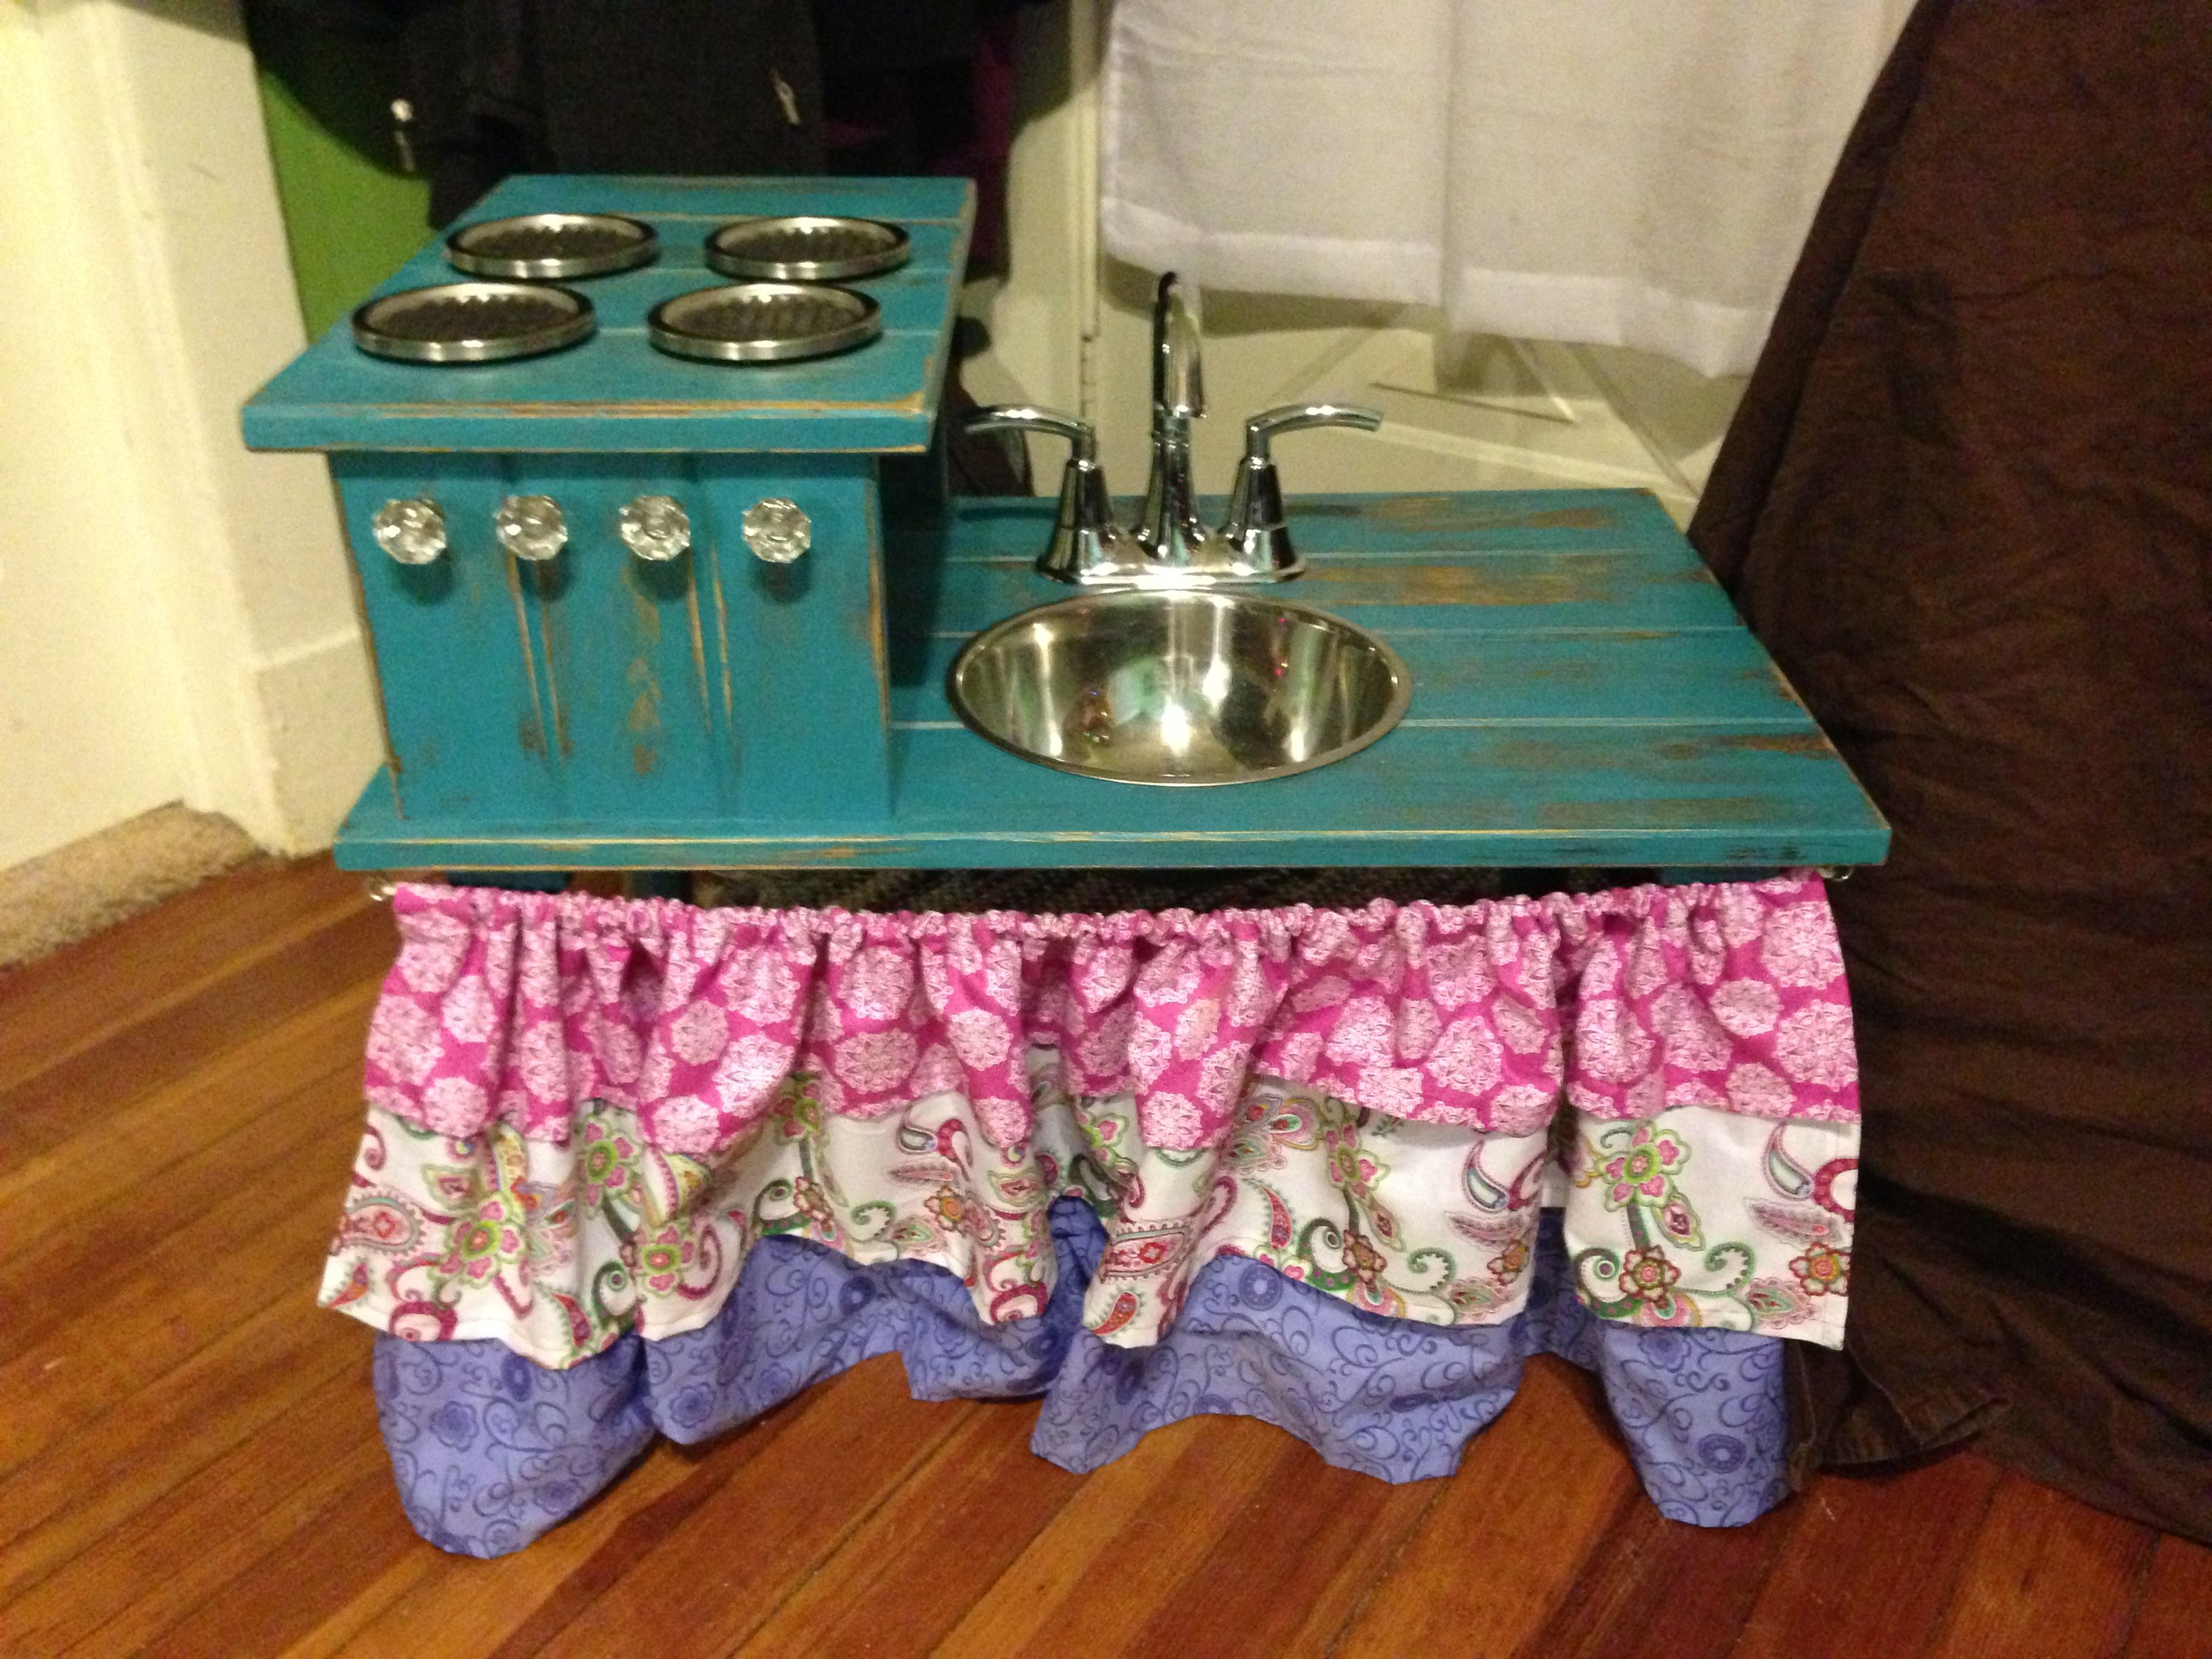 Pretend play kitchen we made for our girls Christmas 2012